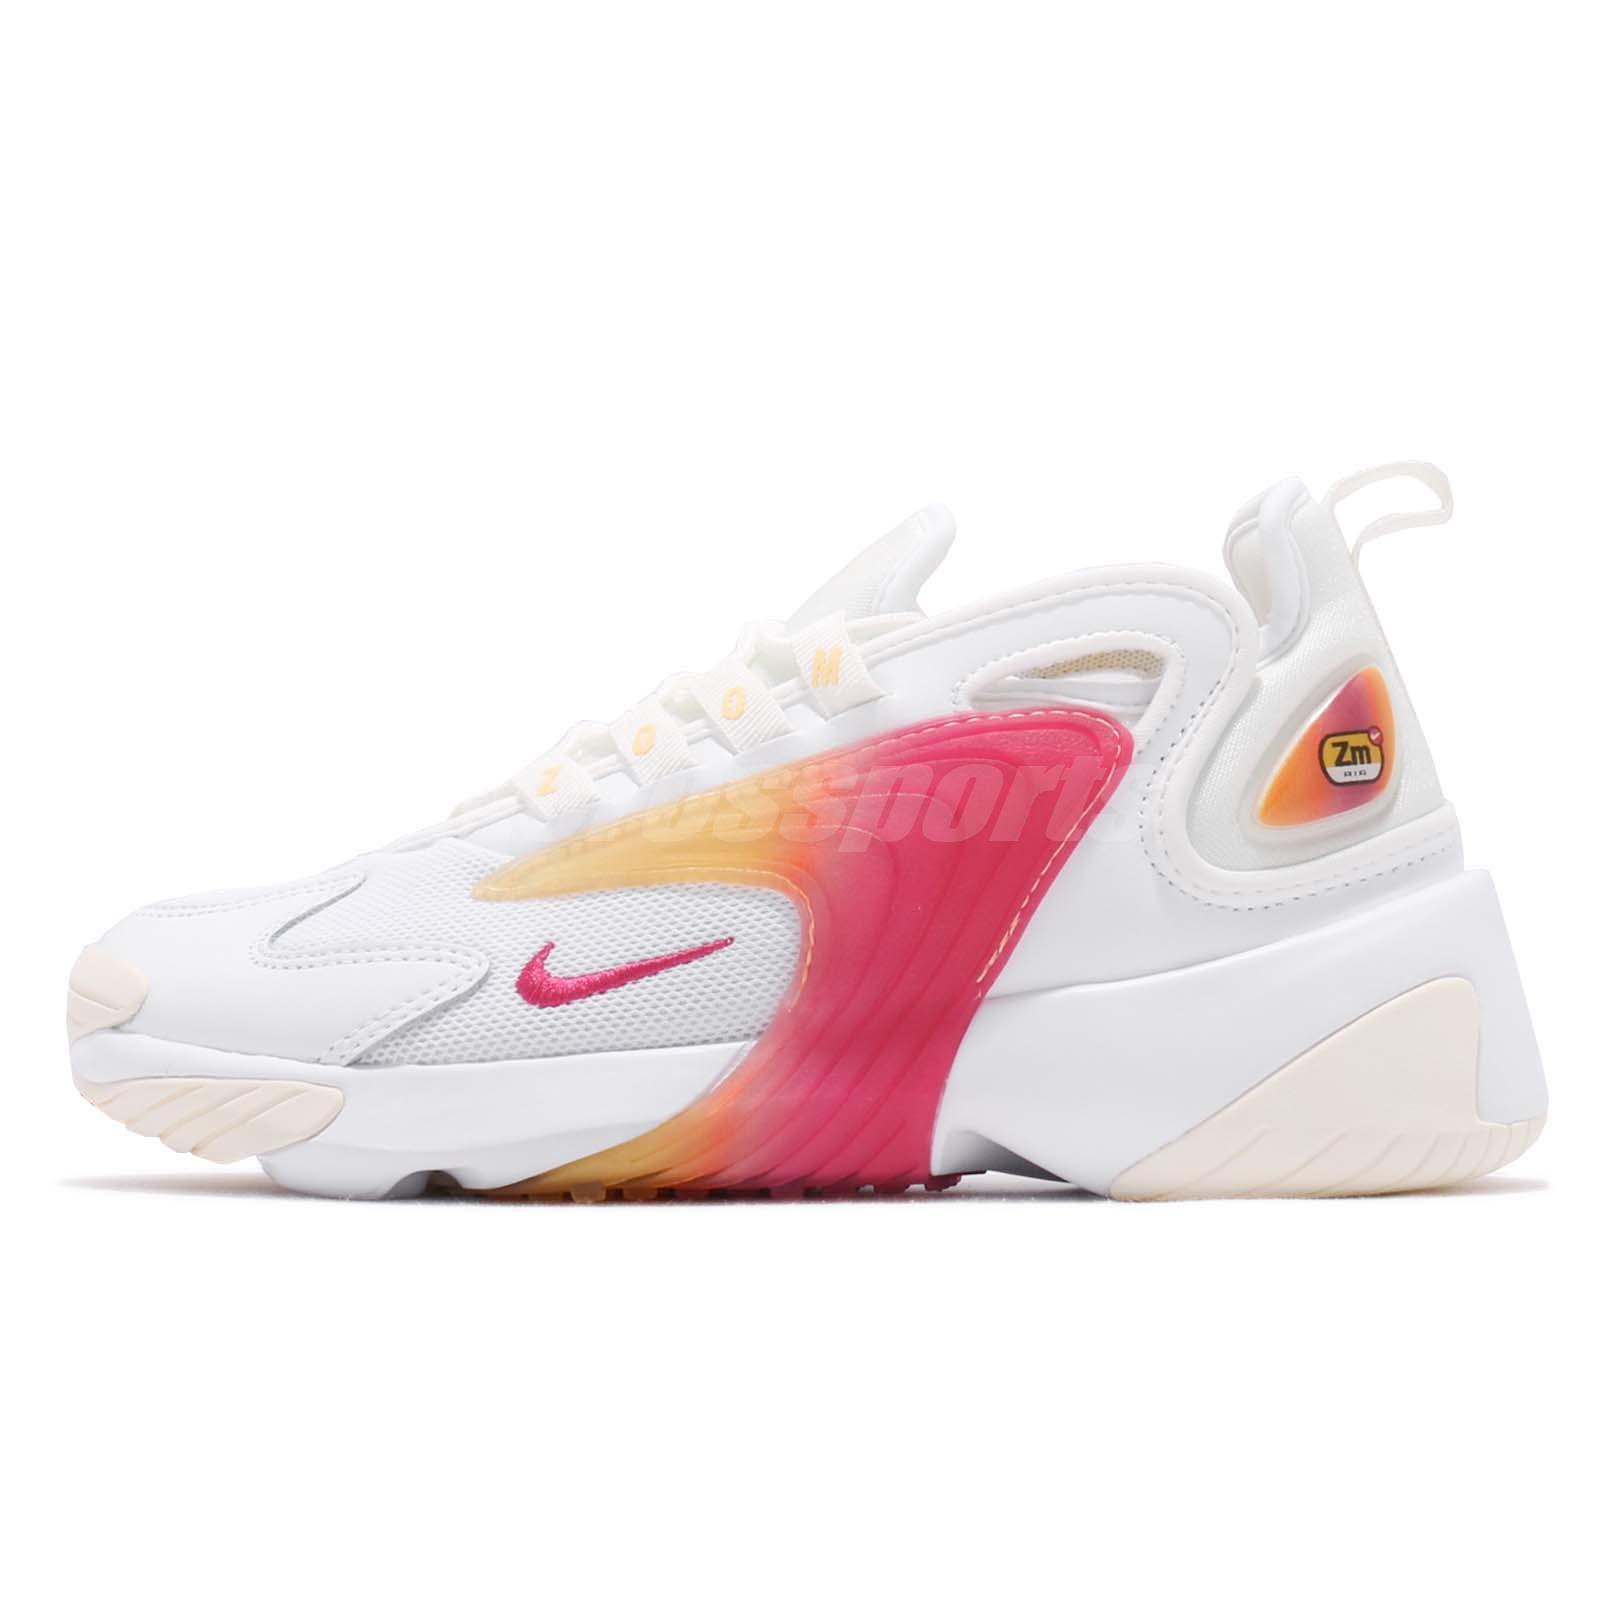 newest 26e41 77306 Nike Wmns Zoom 2K White Rush Pink Sail Womens Running Shoes Sneakers AO0354- 102